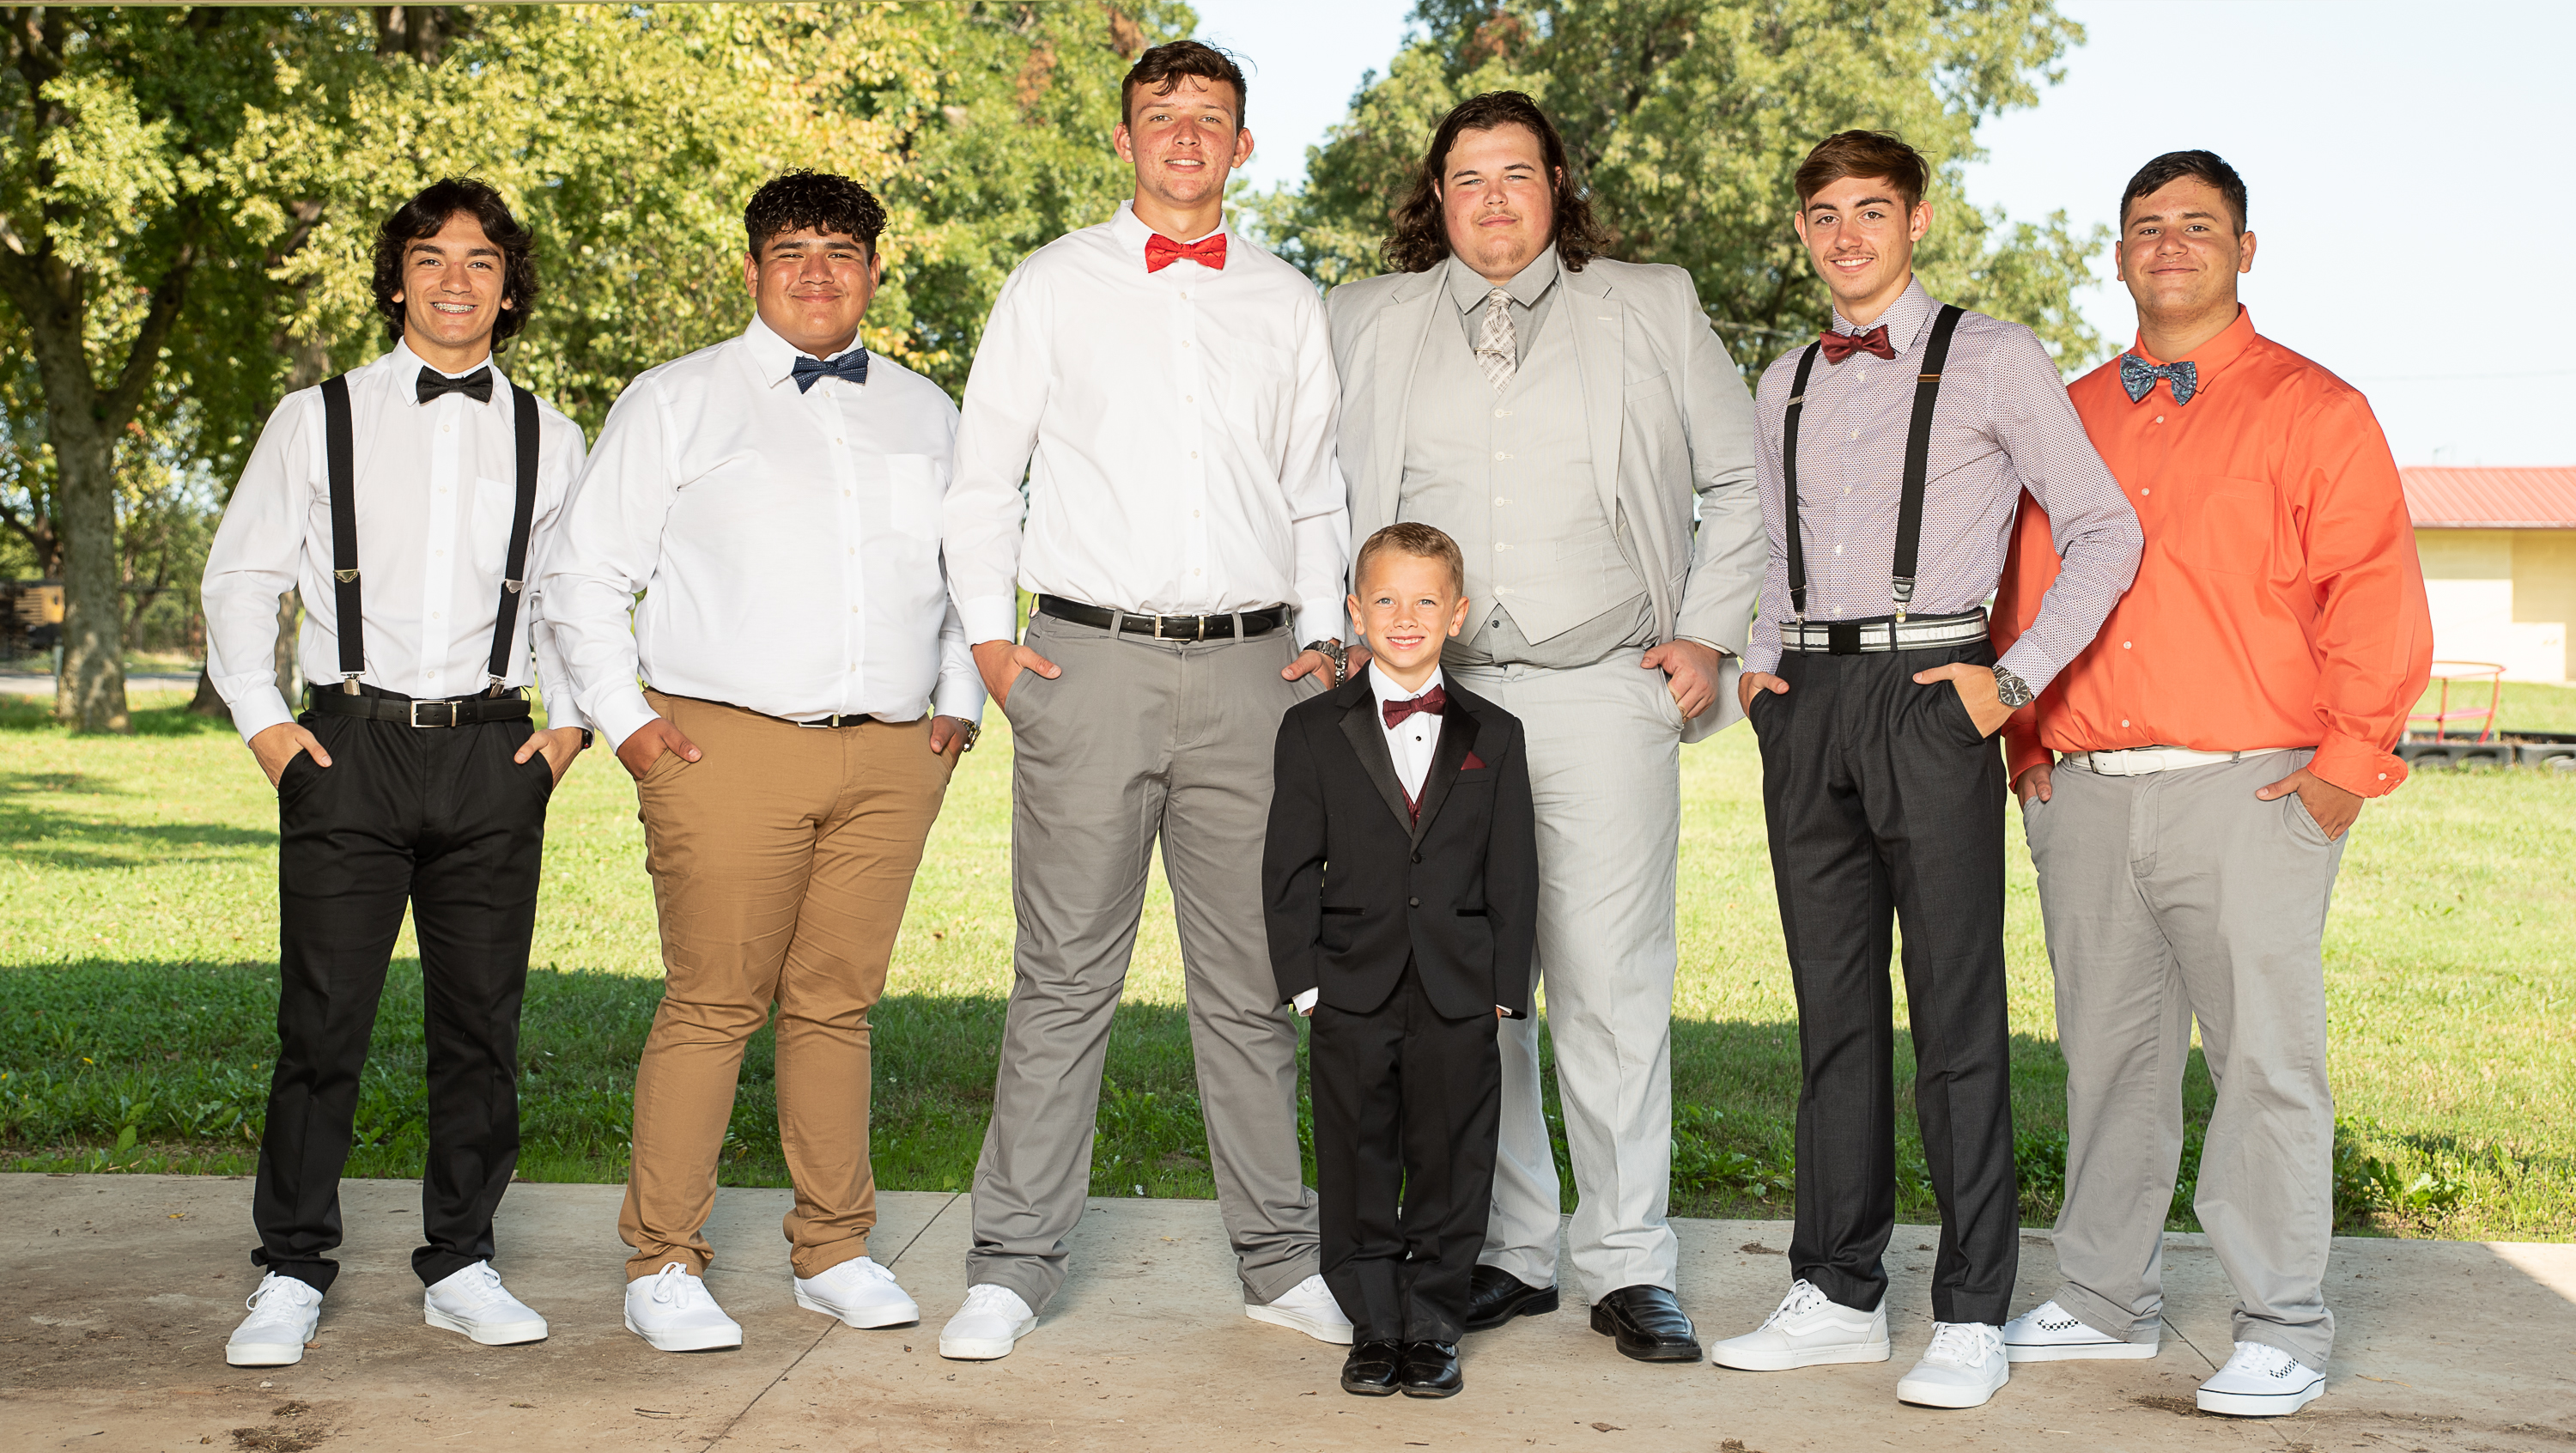 Homecoming pictures